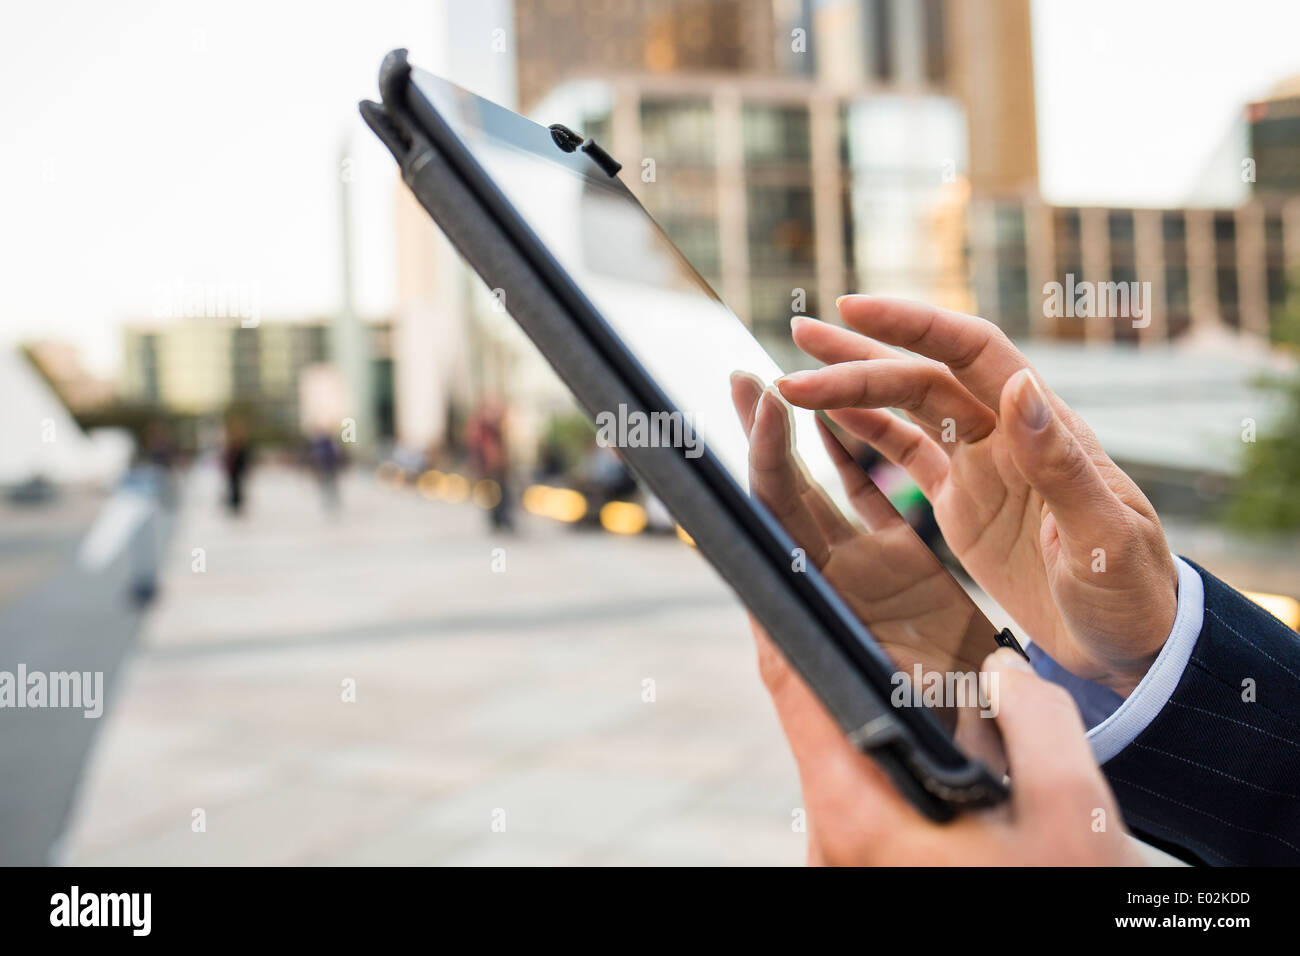 Female Digital Tablet hand outdoor Building - Stock Image